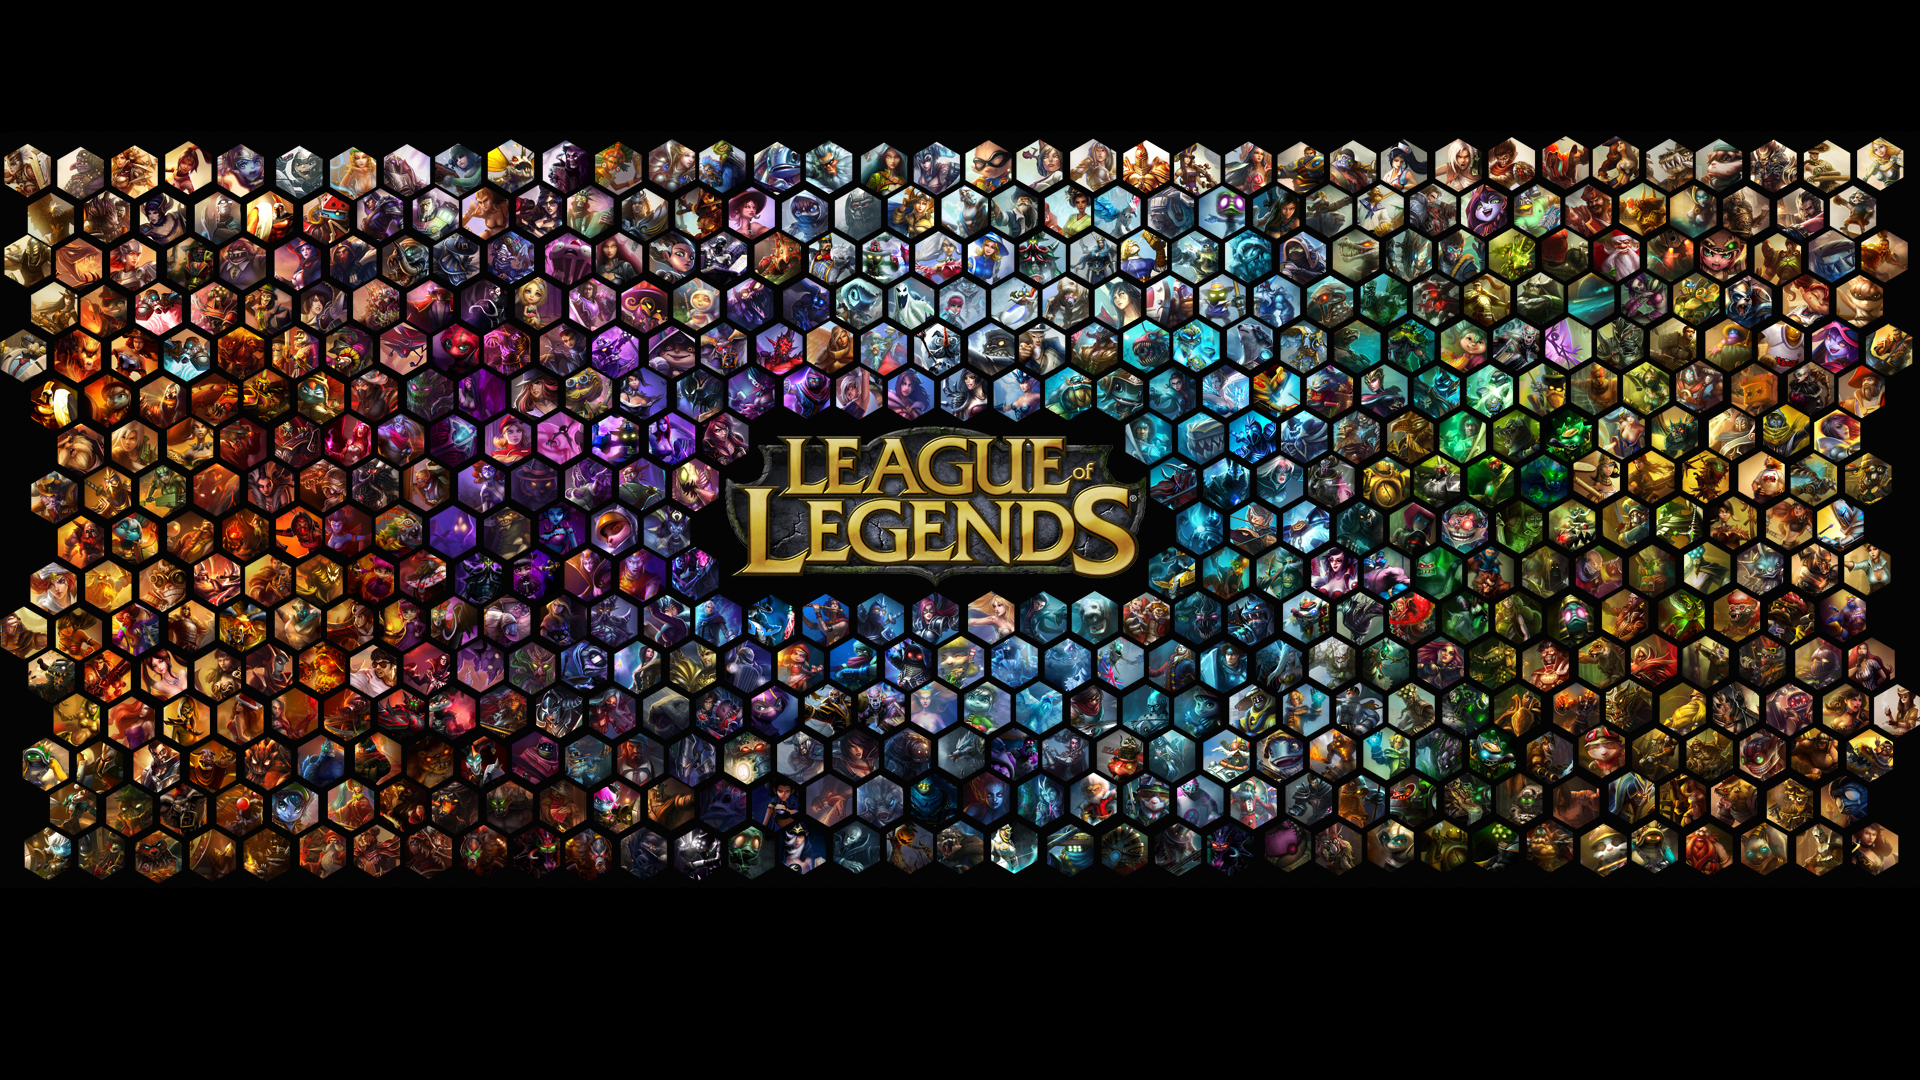 leafue of legends